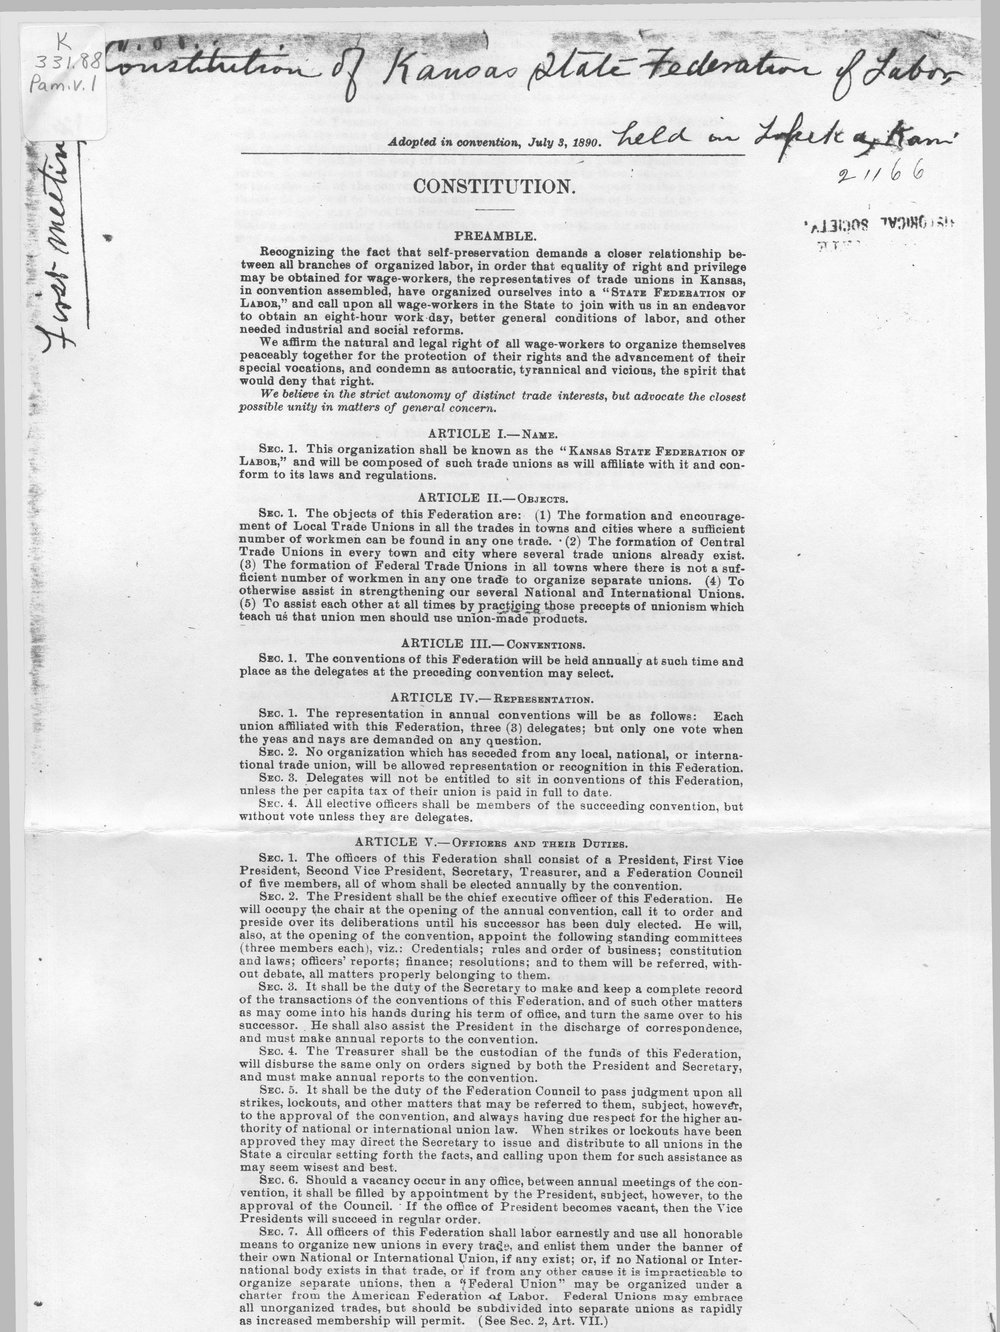 Constitution of the Kansas State Federation of Labor - 1